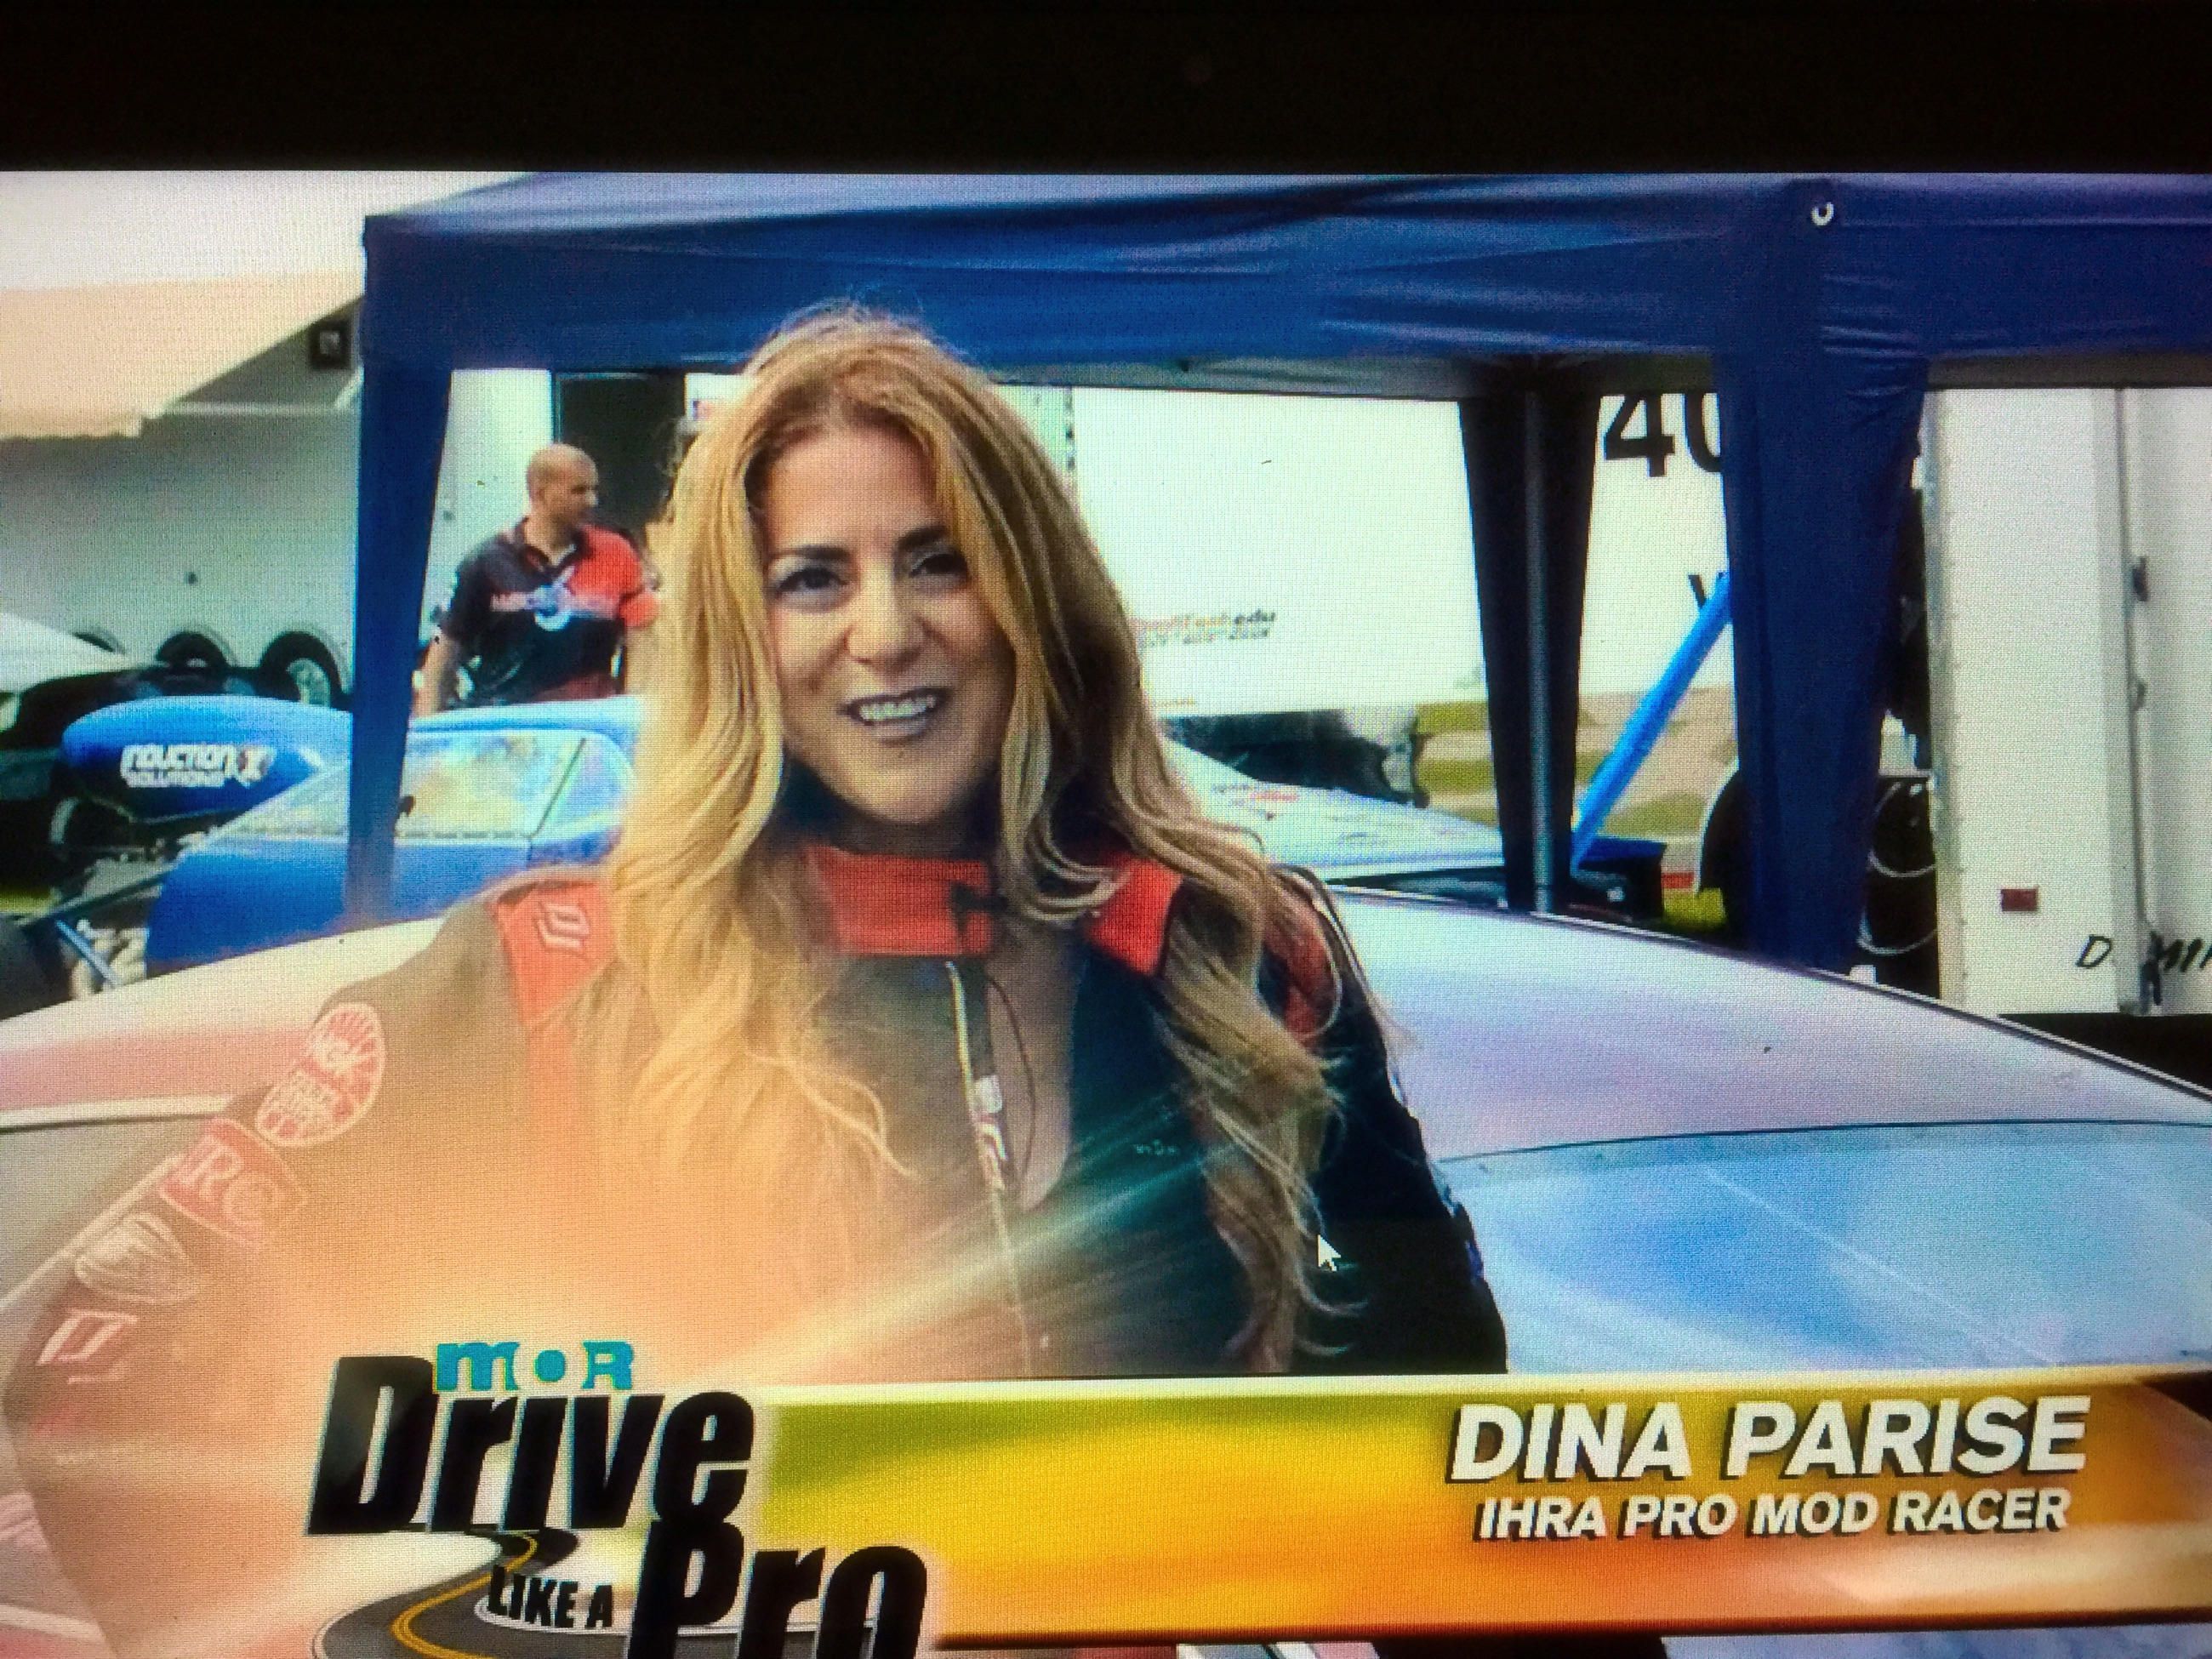 Dina Parise in MOR-TV Drive Like a Pro PSA